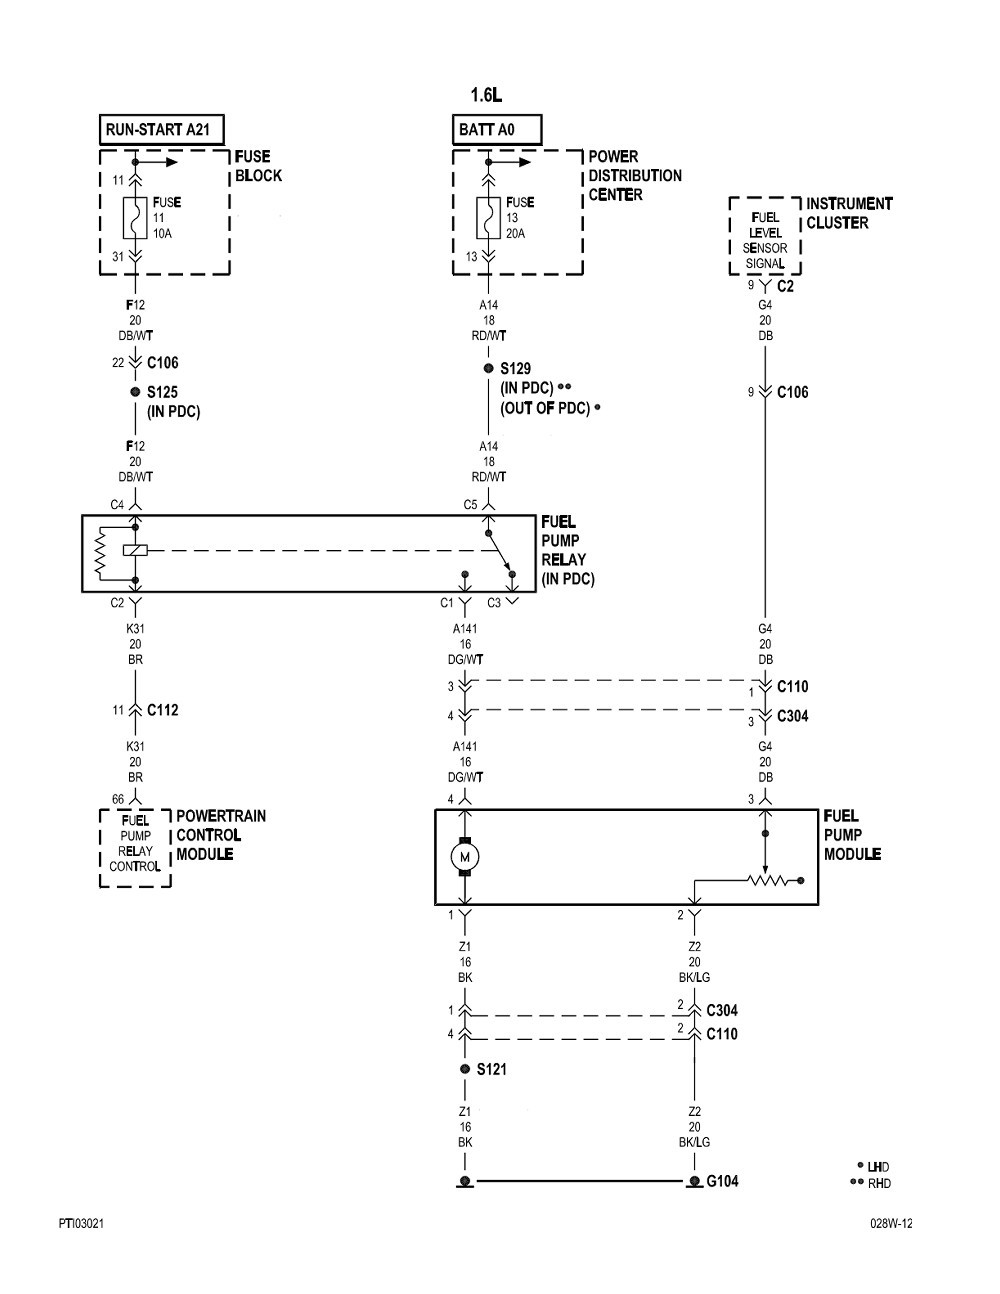 diagram] renault 4 gtl wiring diagram portugues full version hd quality  diagram portugues - diagramsimasj.laserdrone.it  diagramsimasj.laserdrone.it